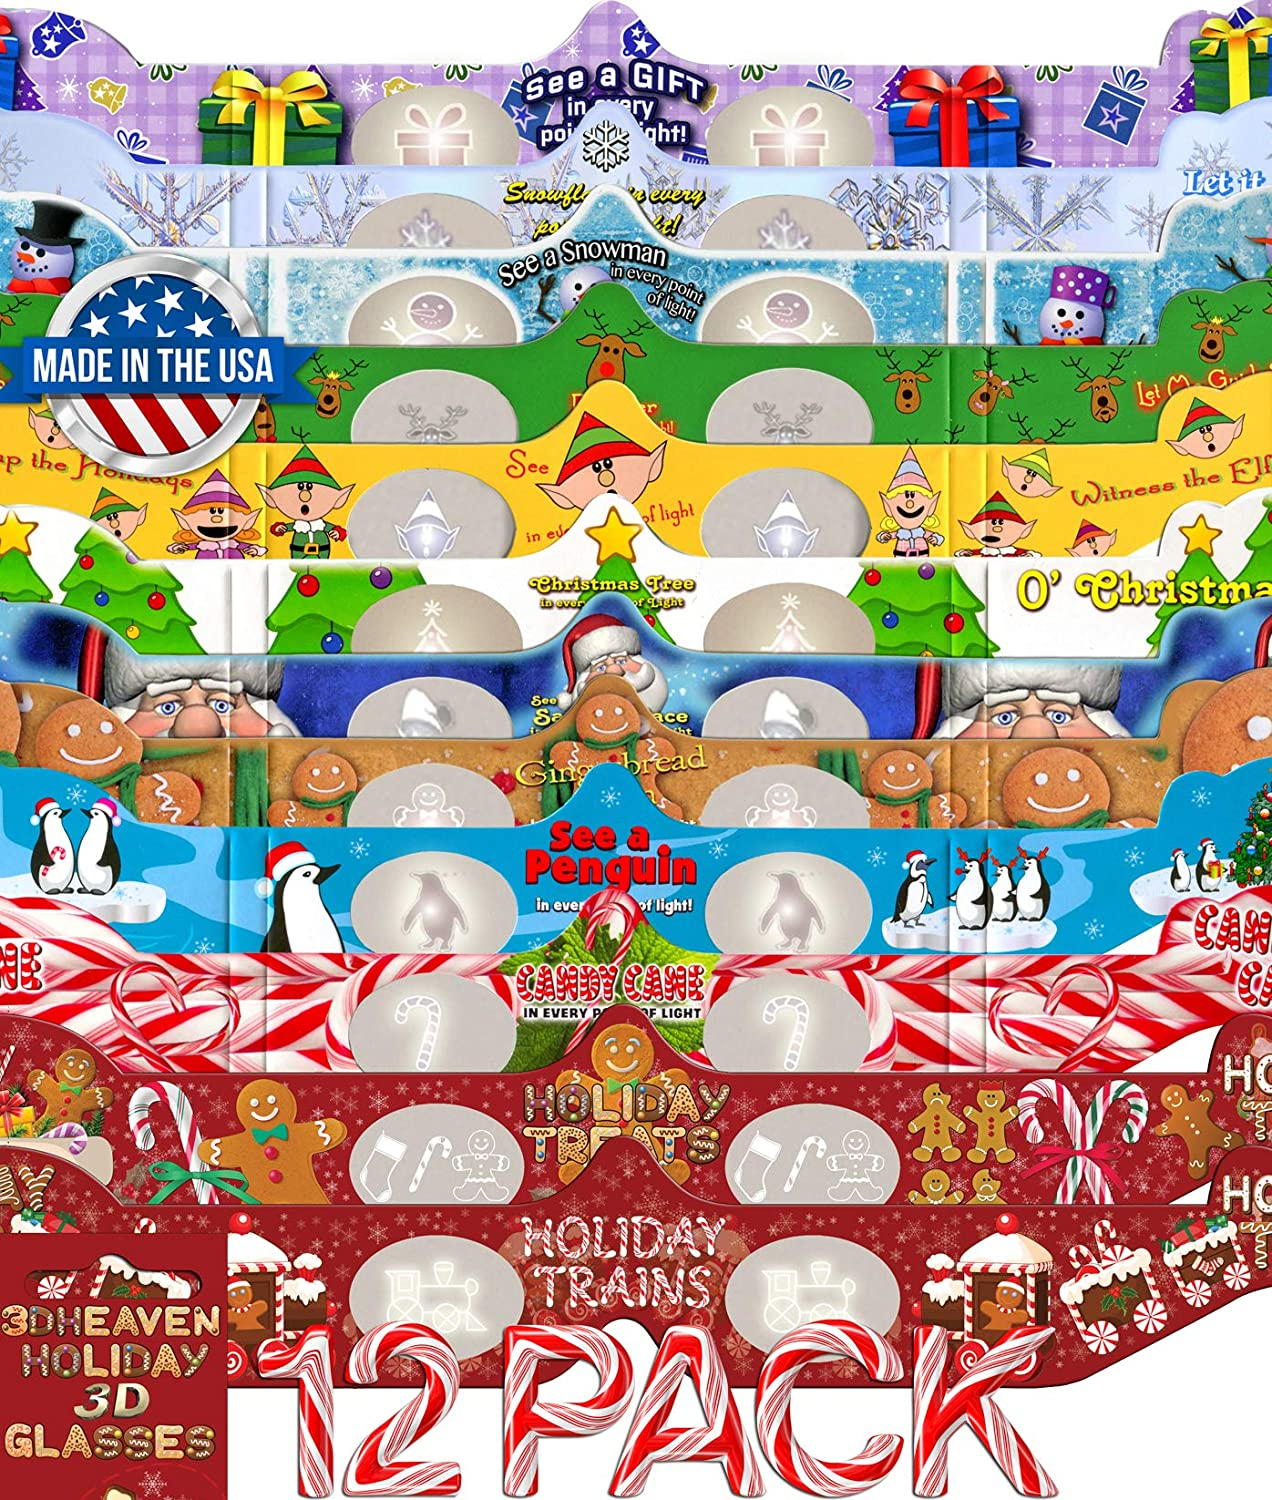 Holiday 3D Glasses Al sold out. 12 Pack Exclusive Challenge the lowest price Treats with Styles